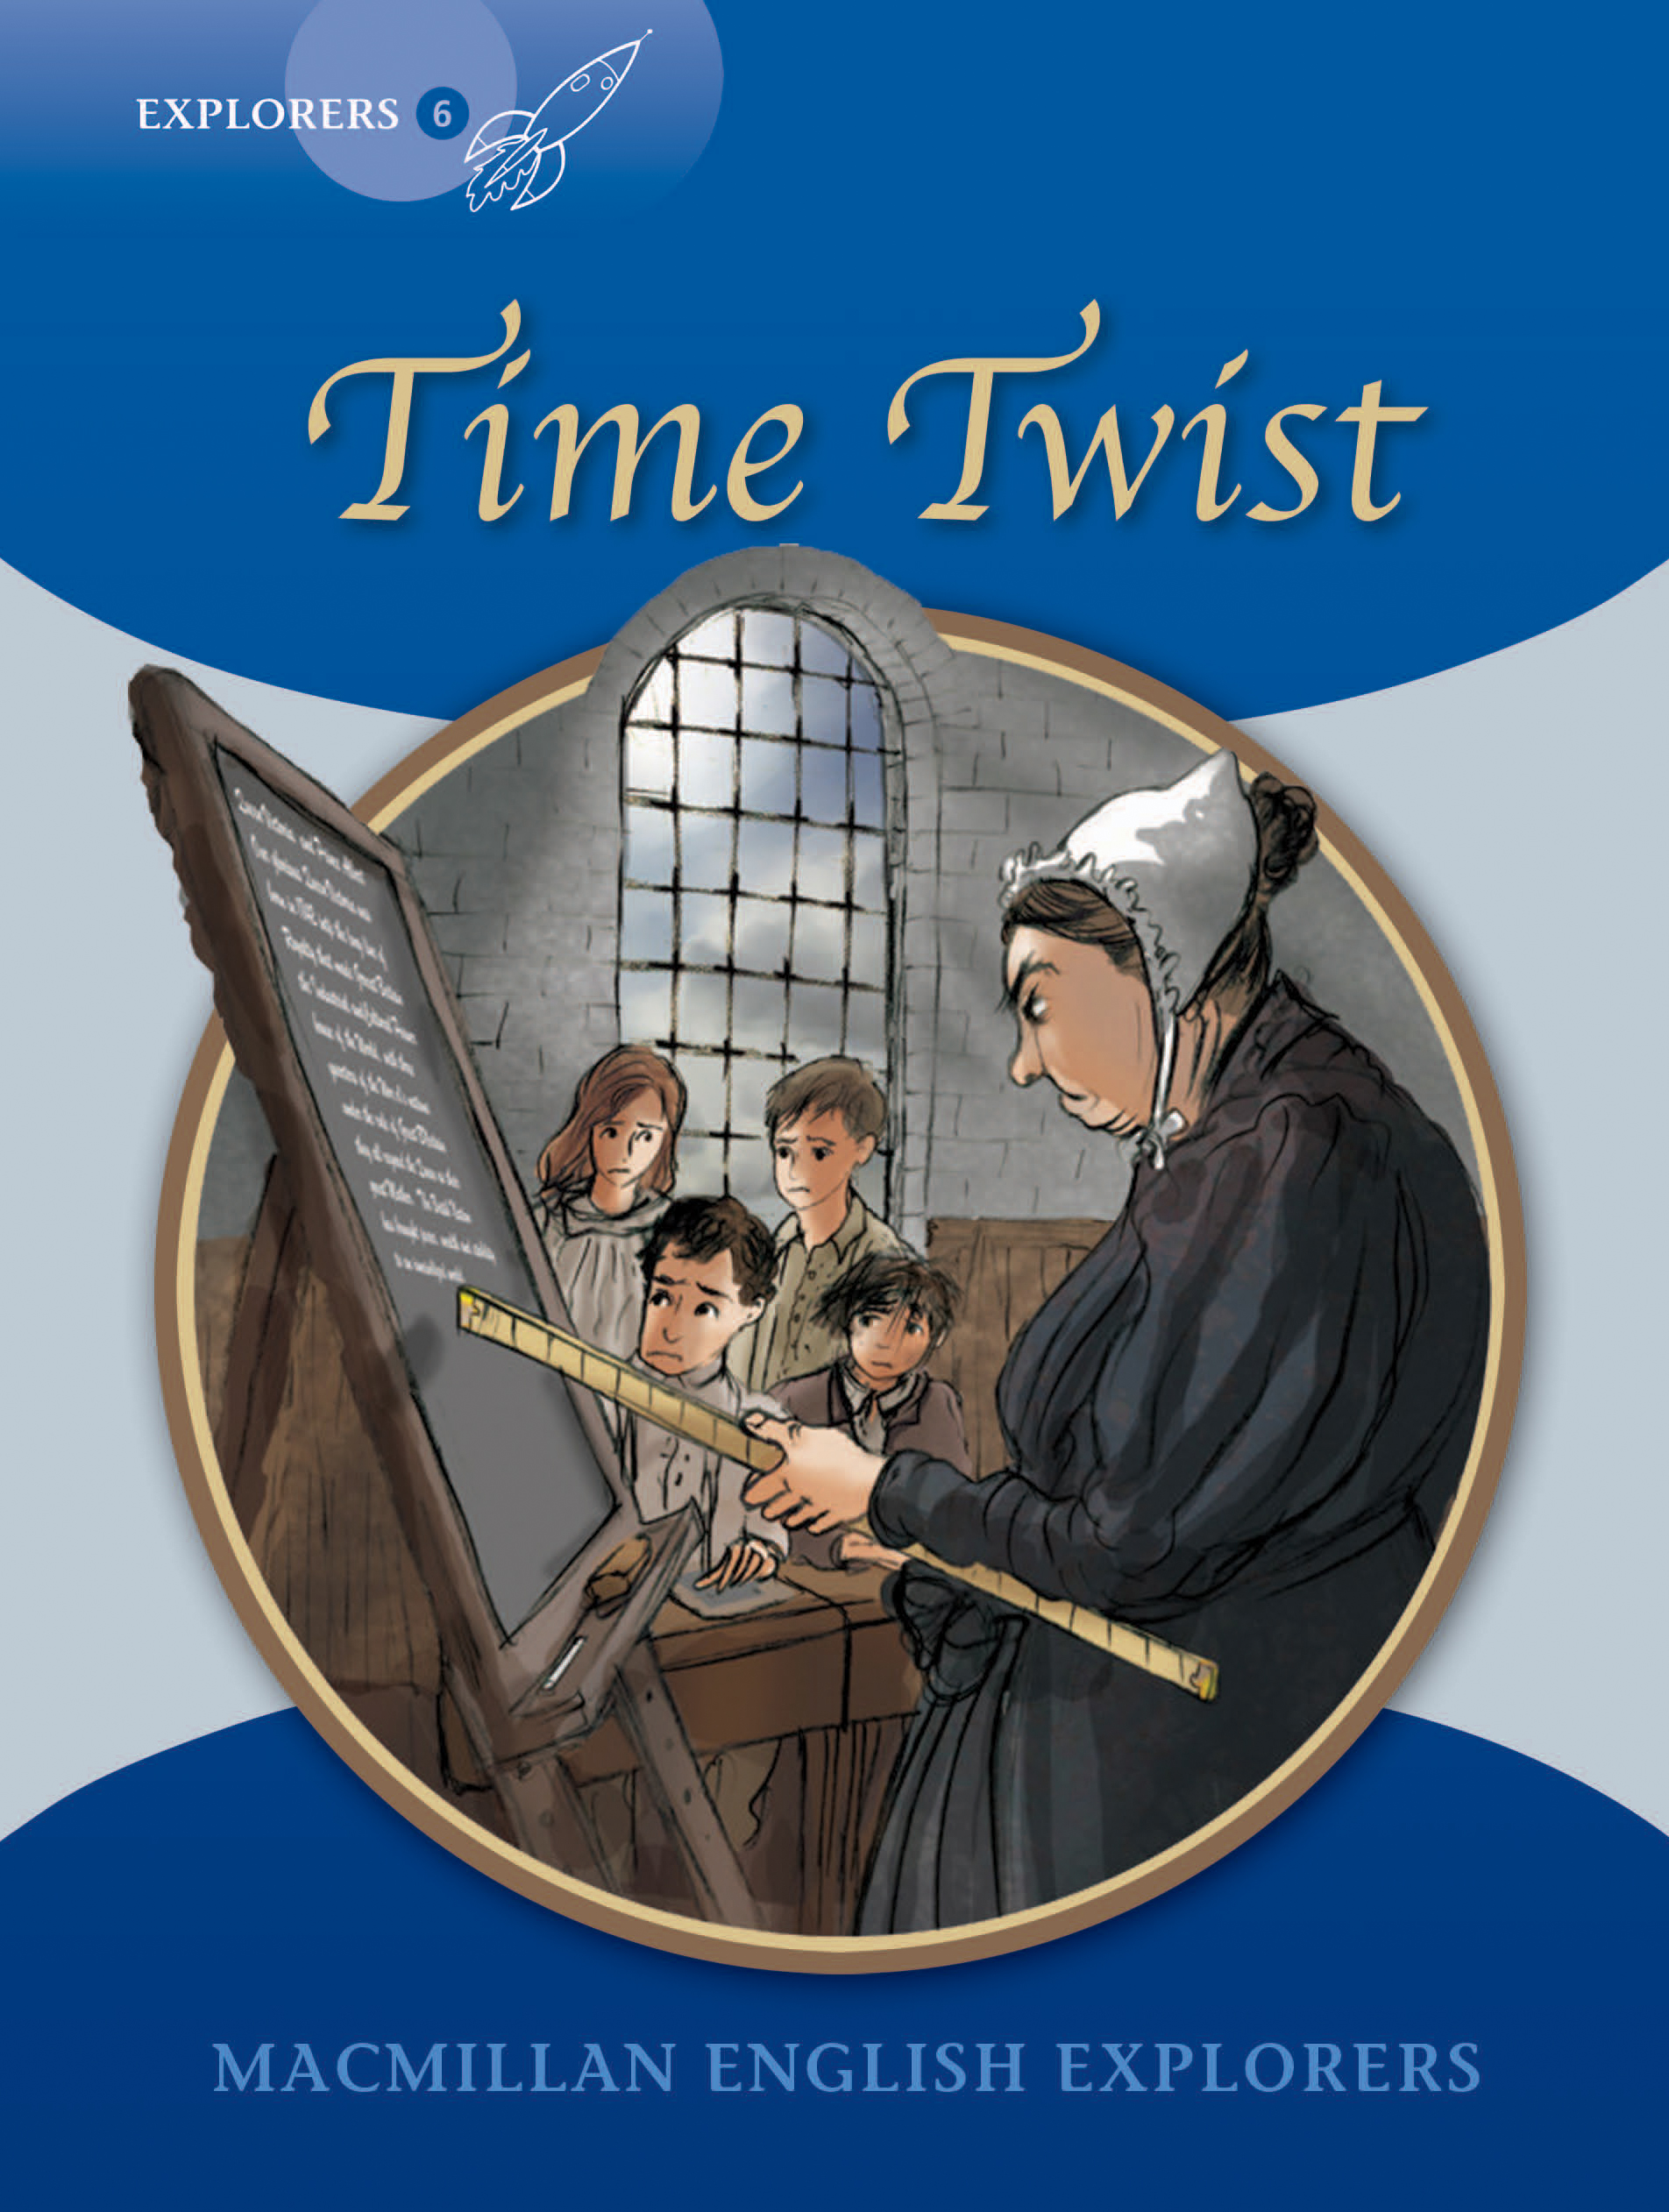 Explorers 6: Time Twist